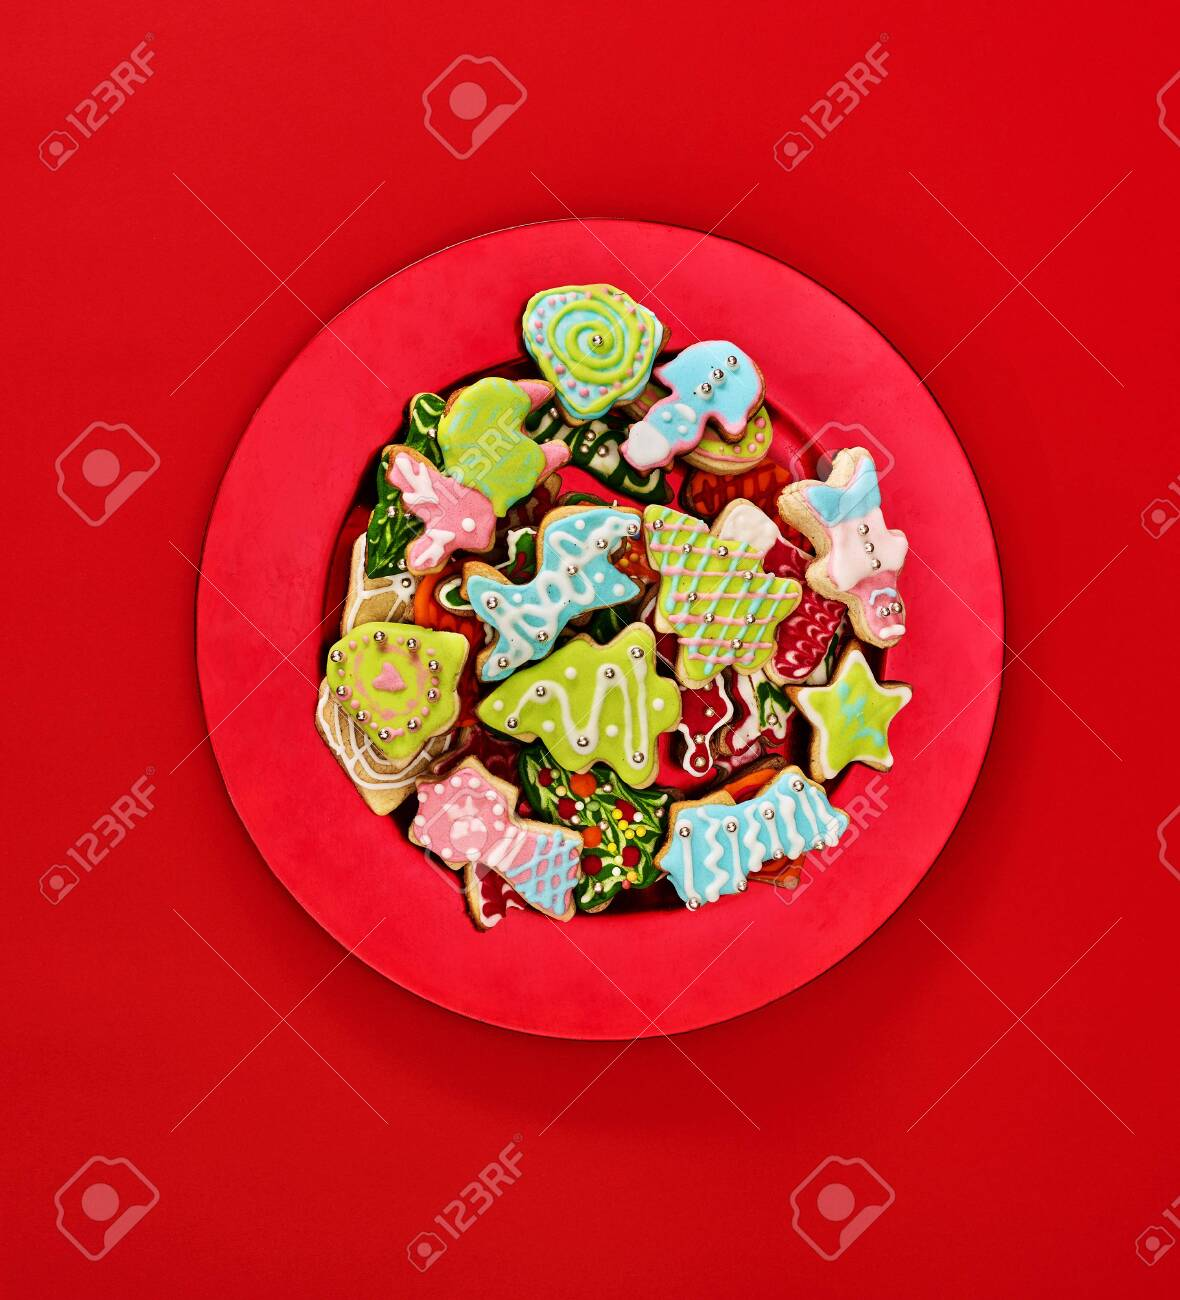 Christmas gingerbread cookies on red Xmas plate and same color background . Top view long vertical design frame with copy space top. - 133939734